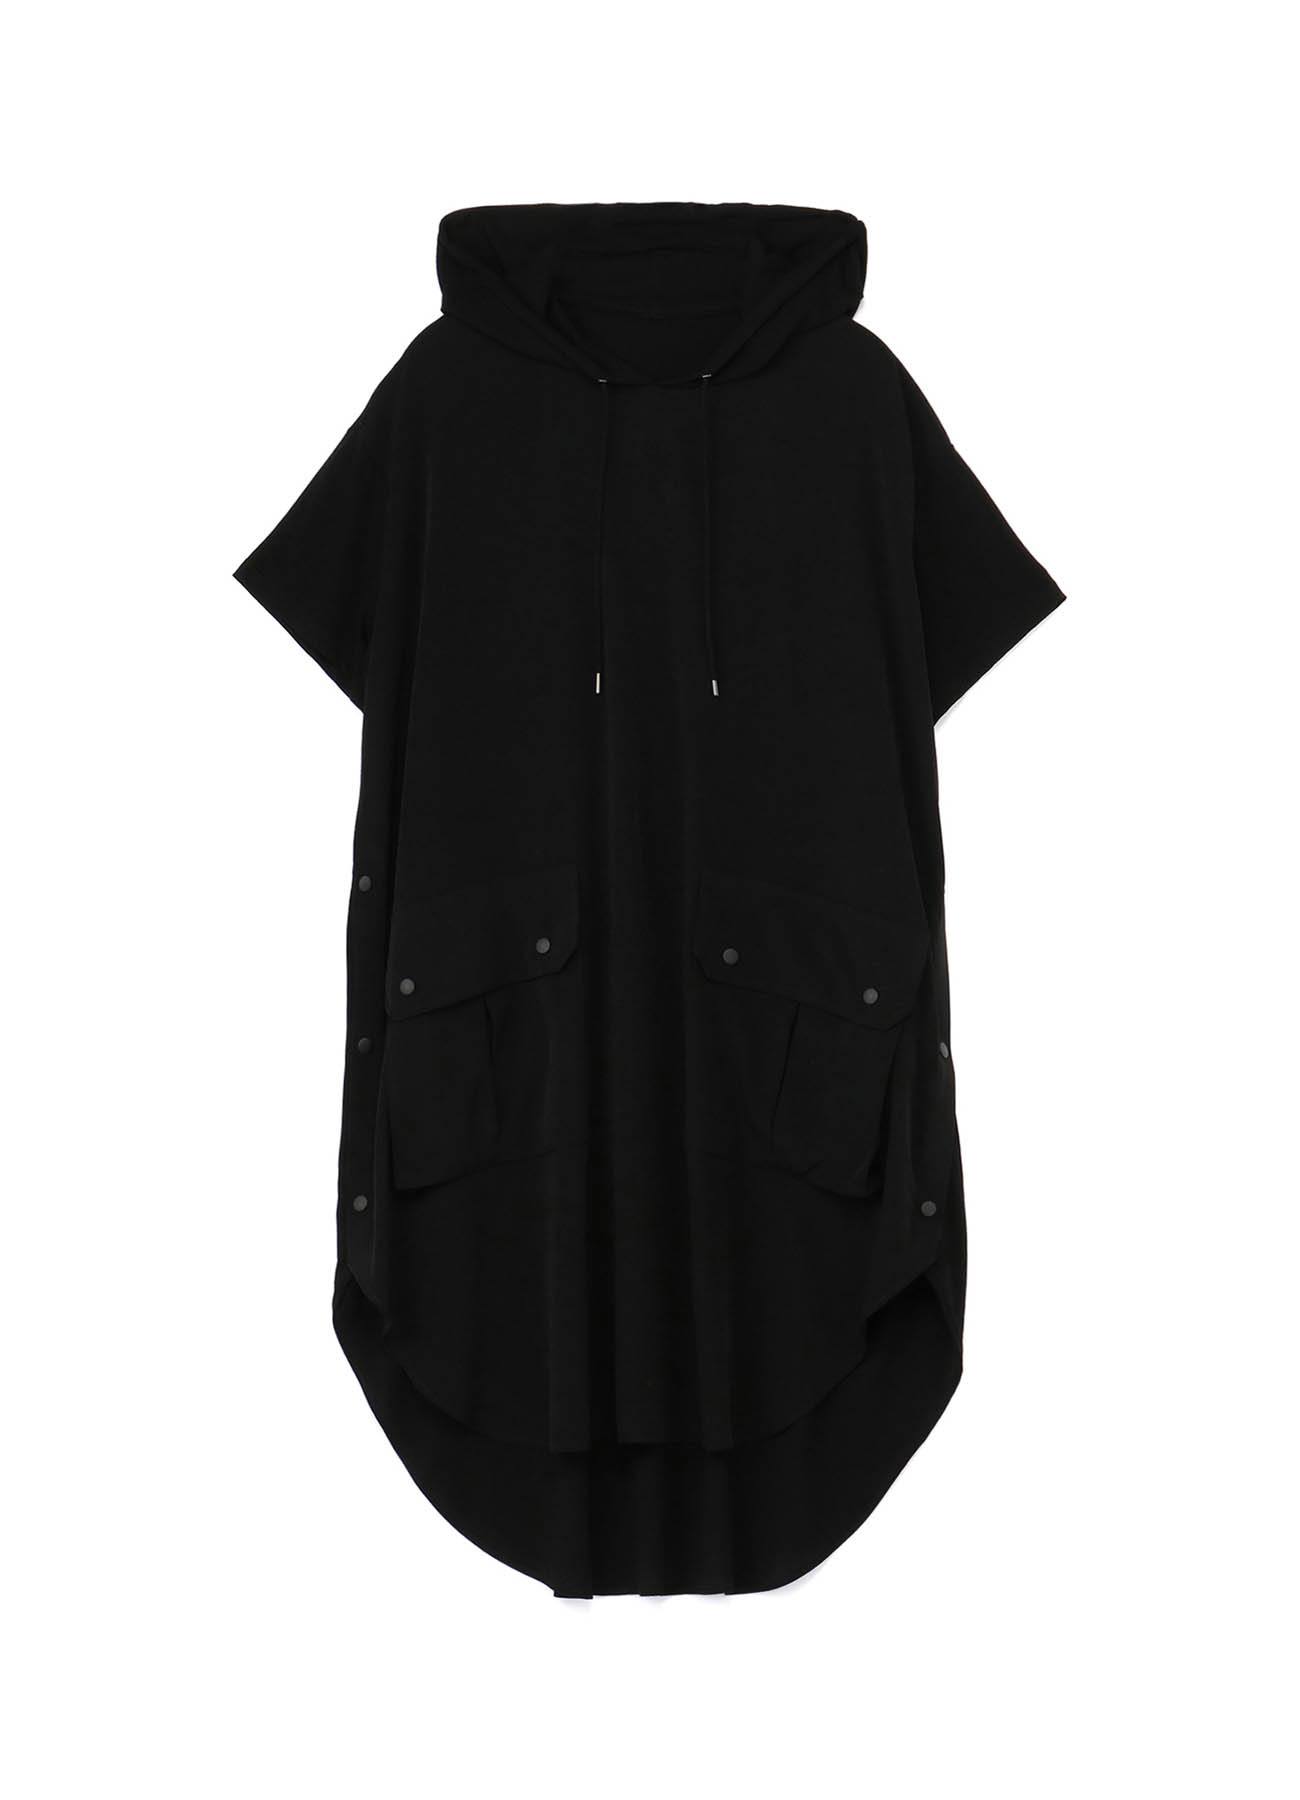 Big Hood Short Sleeves Dress